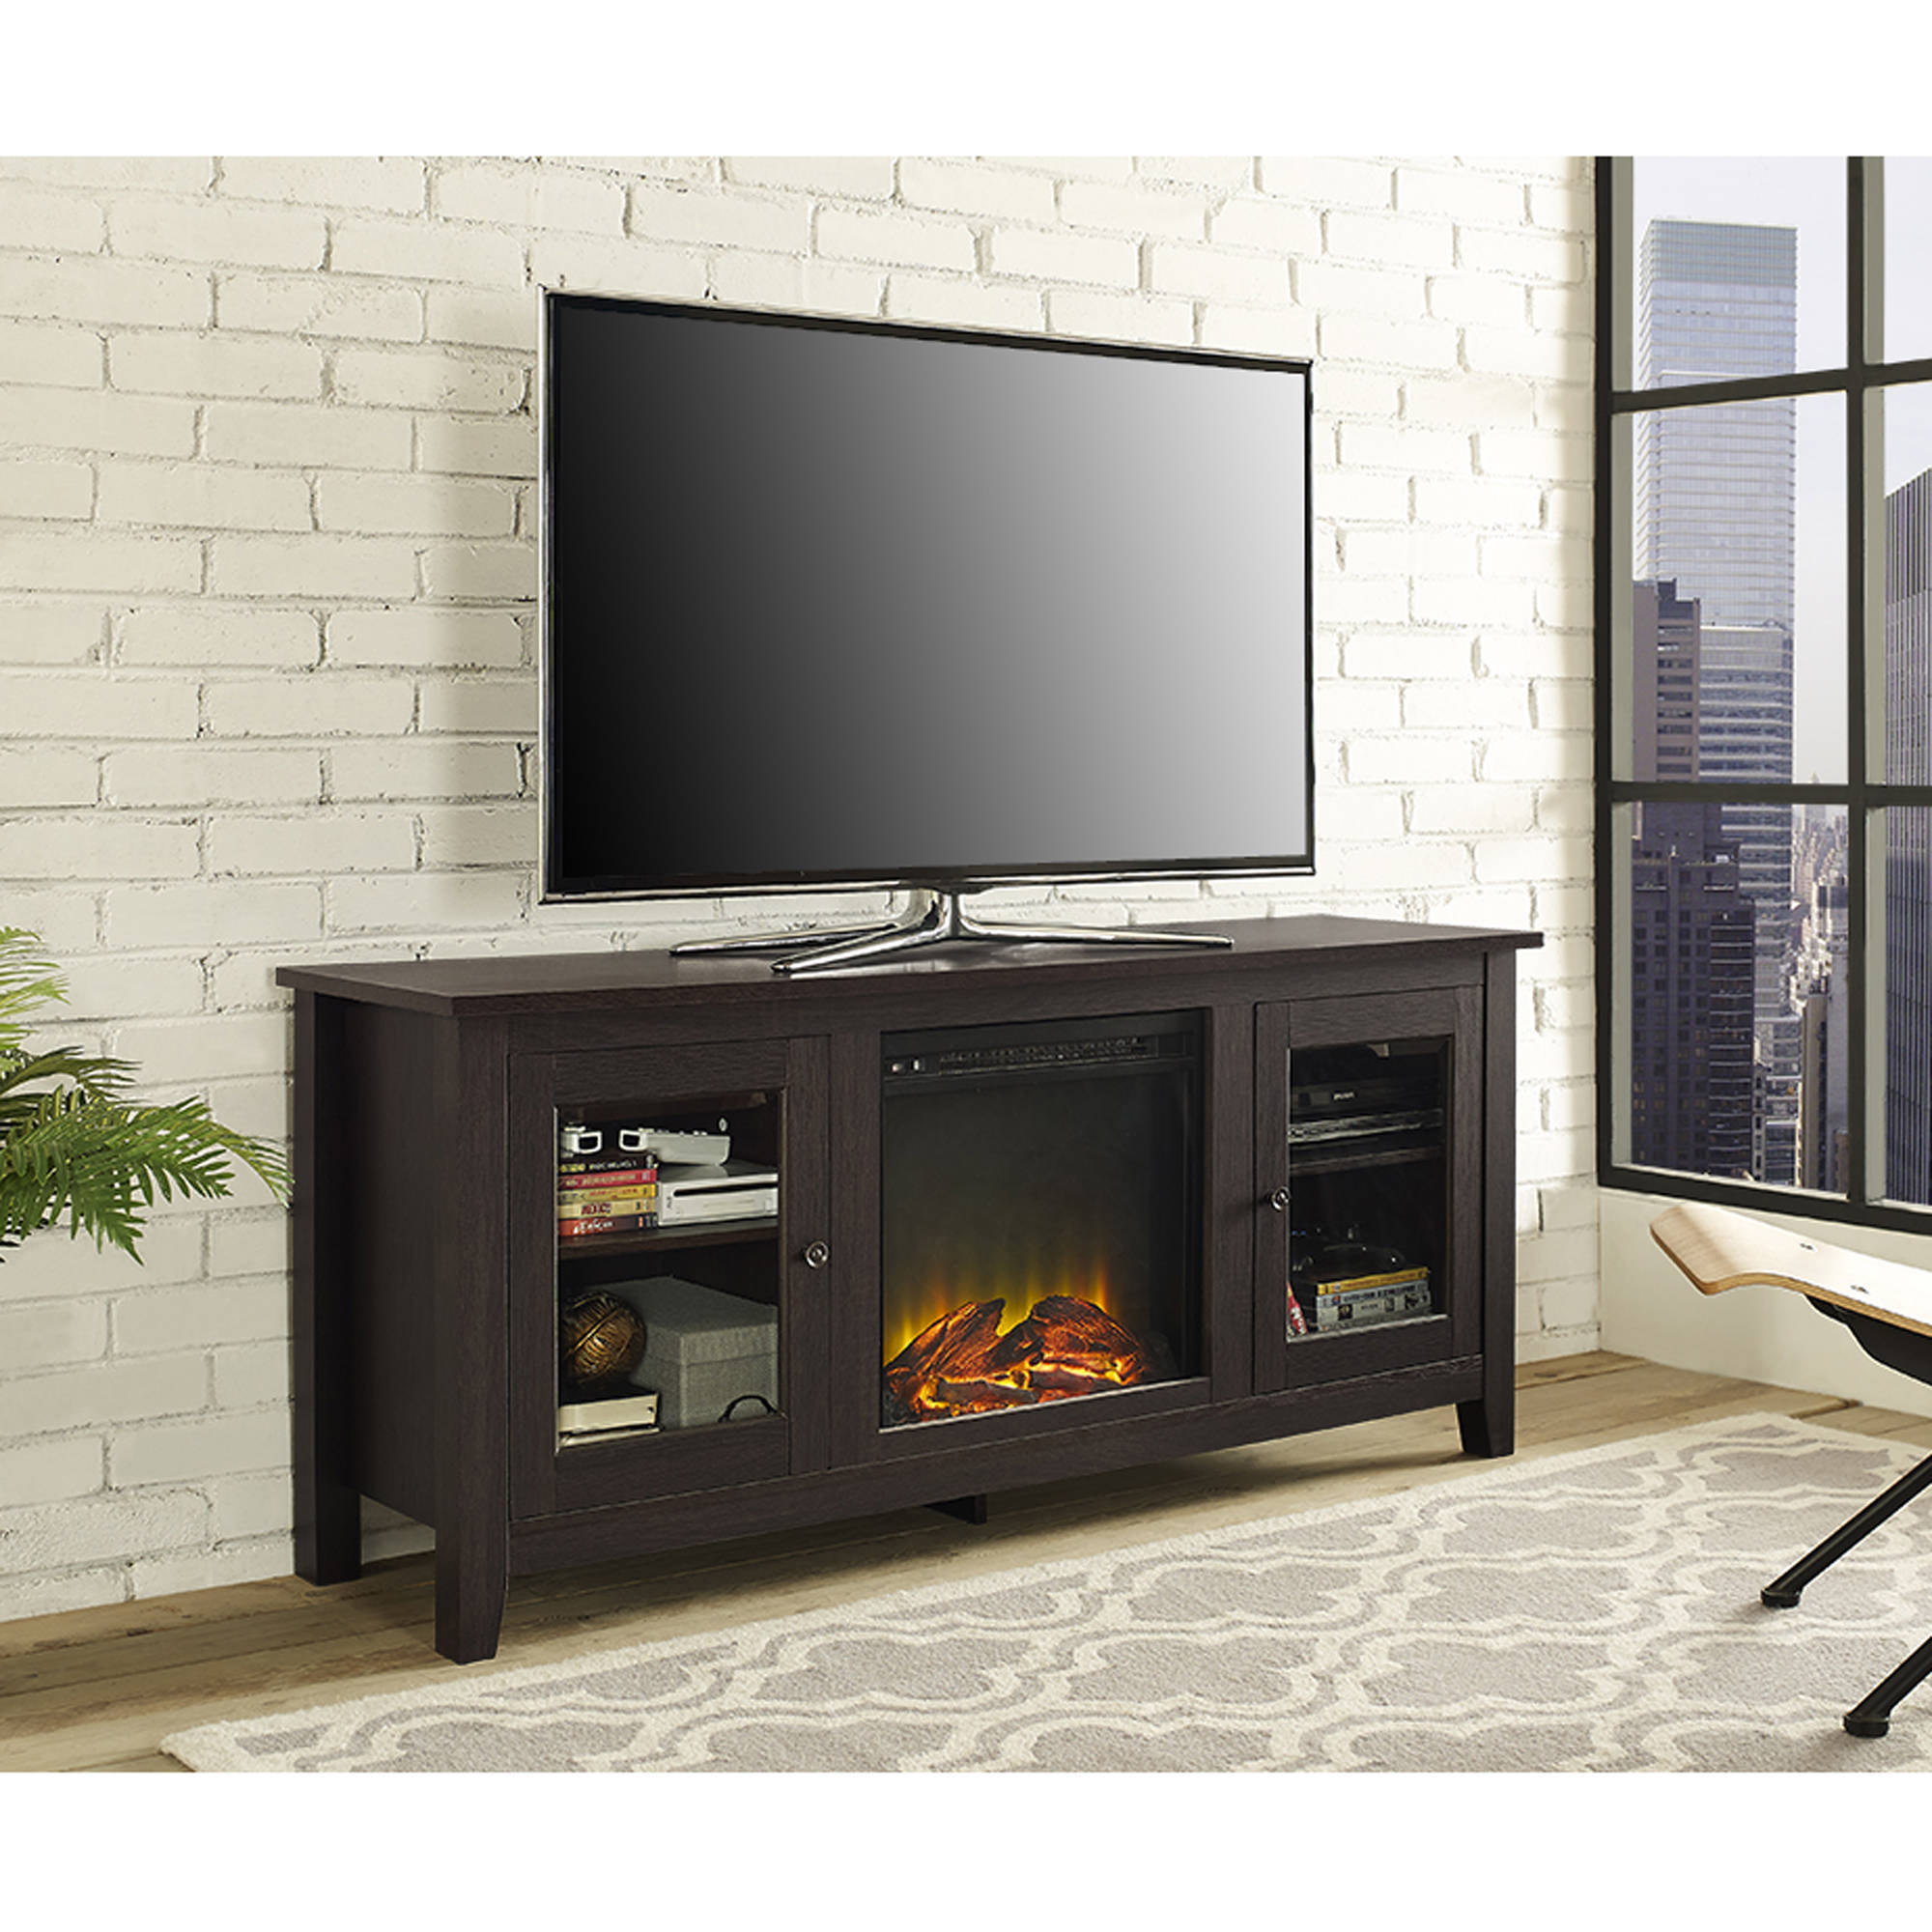 Tv Stands & Entertainment Centers – Walmart Throughout Well Known Corner Tv Stands For 60 Inch Flat Screens (View 17 of 20)